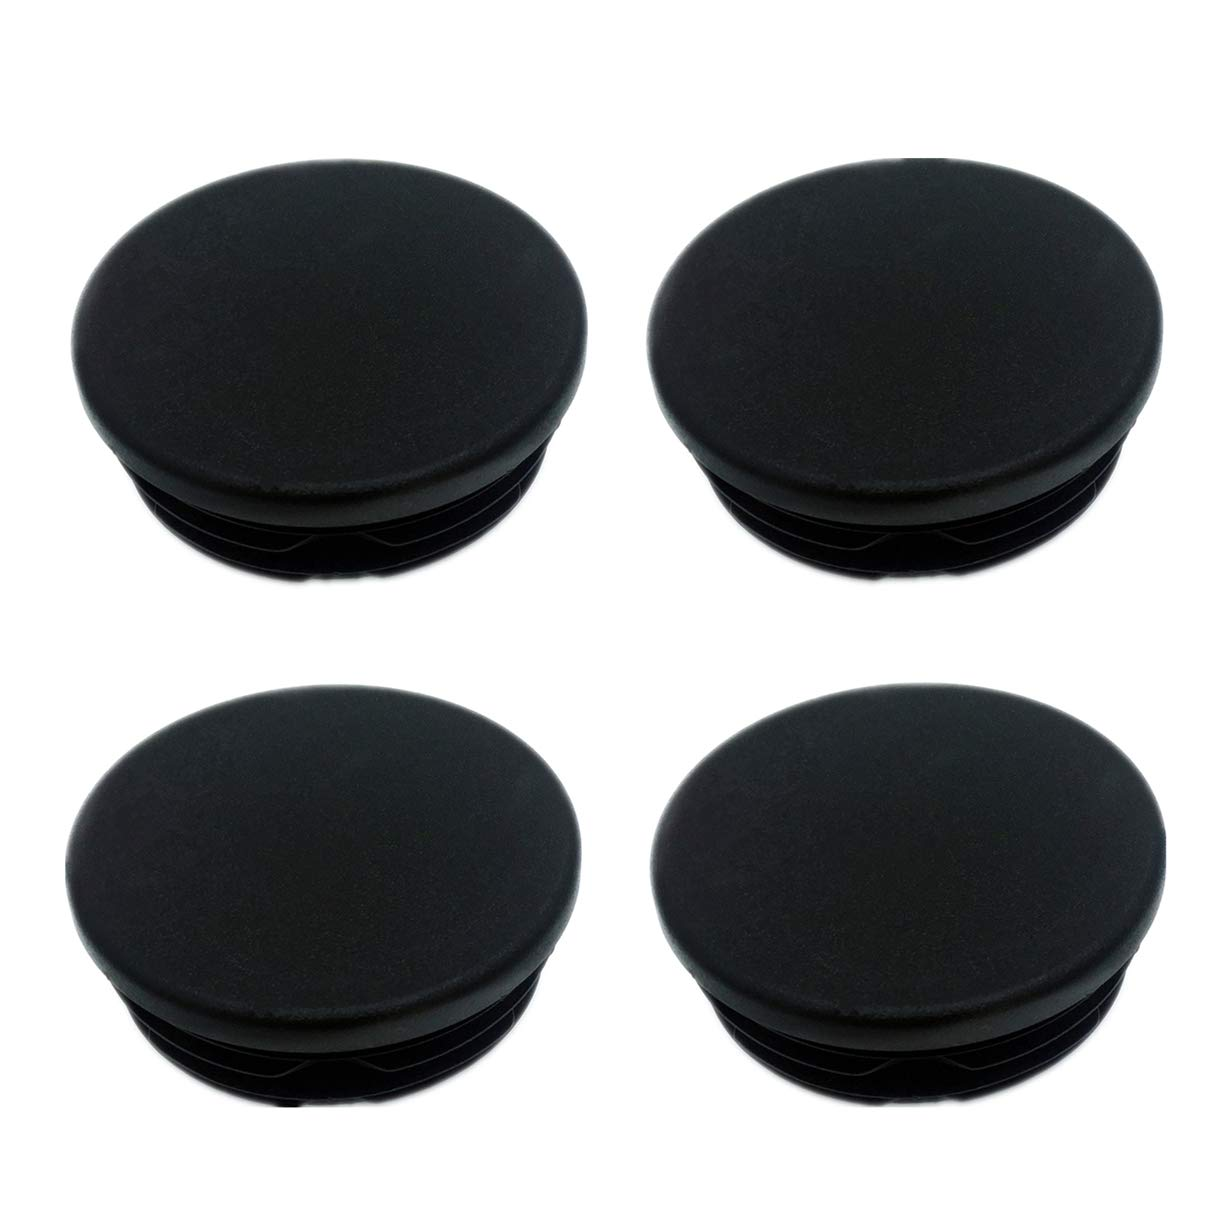 Ezzy Auto Pack 4 Frame Tube Hole Plugs Rear Wheel Well Covers fit for 1999-2018 Chevy Silverado GMC Sierra 1500 Pickup Trucks Accessories